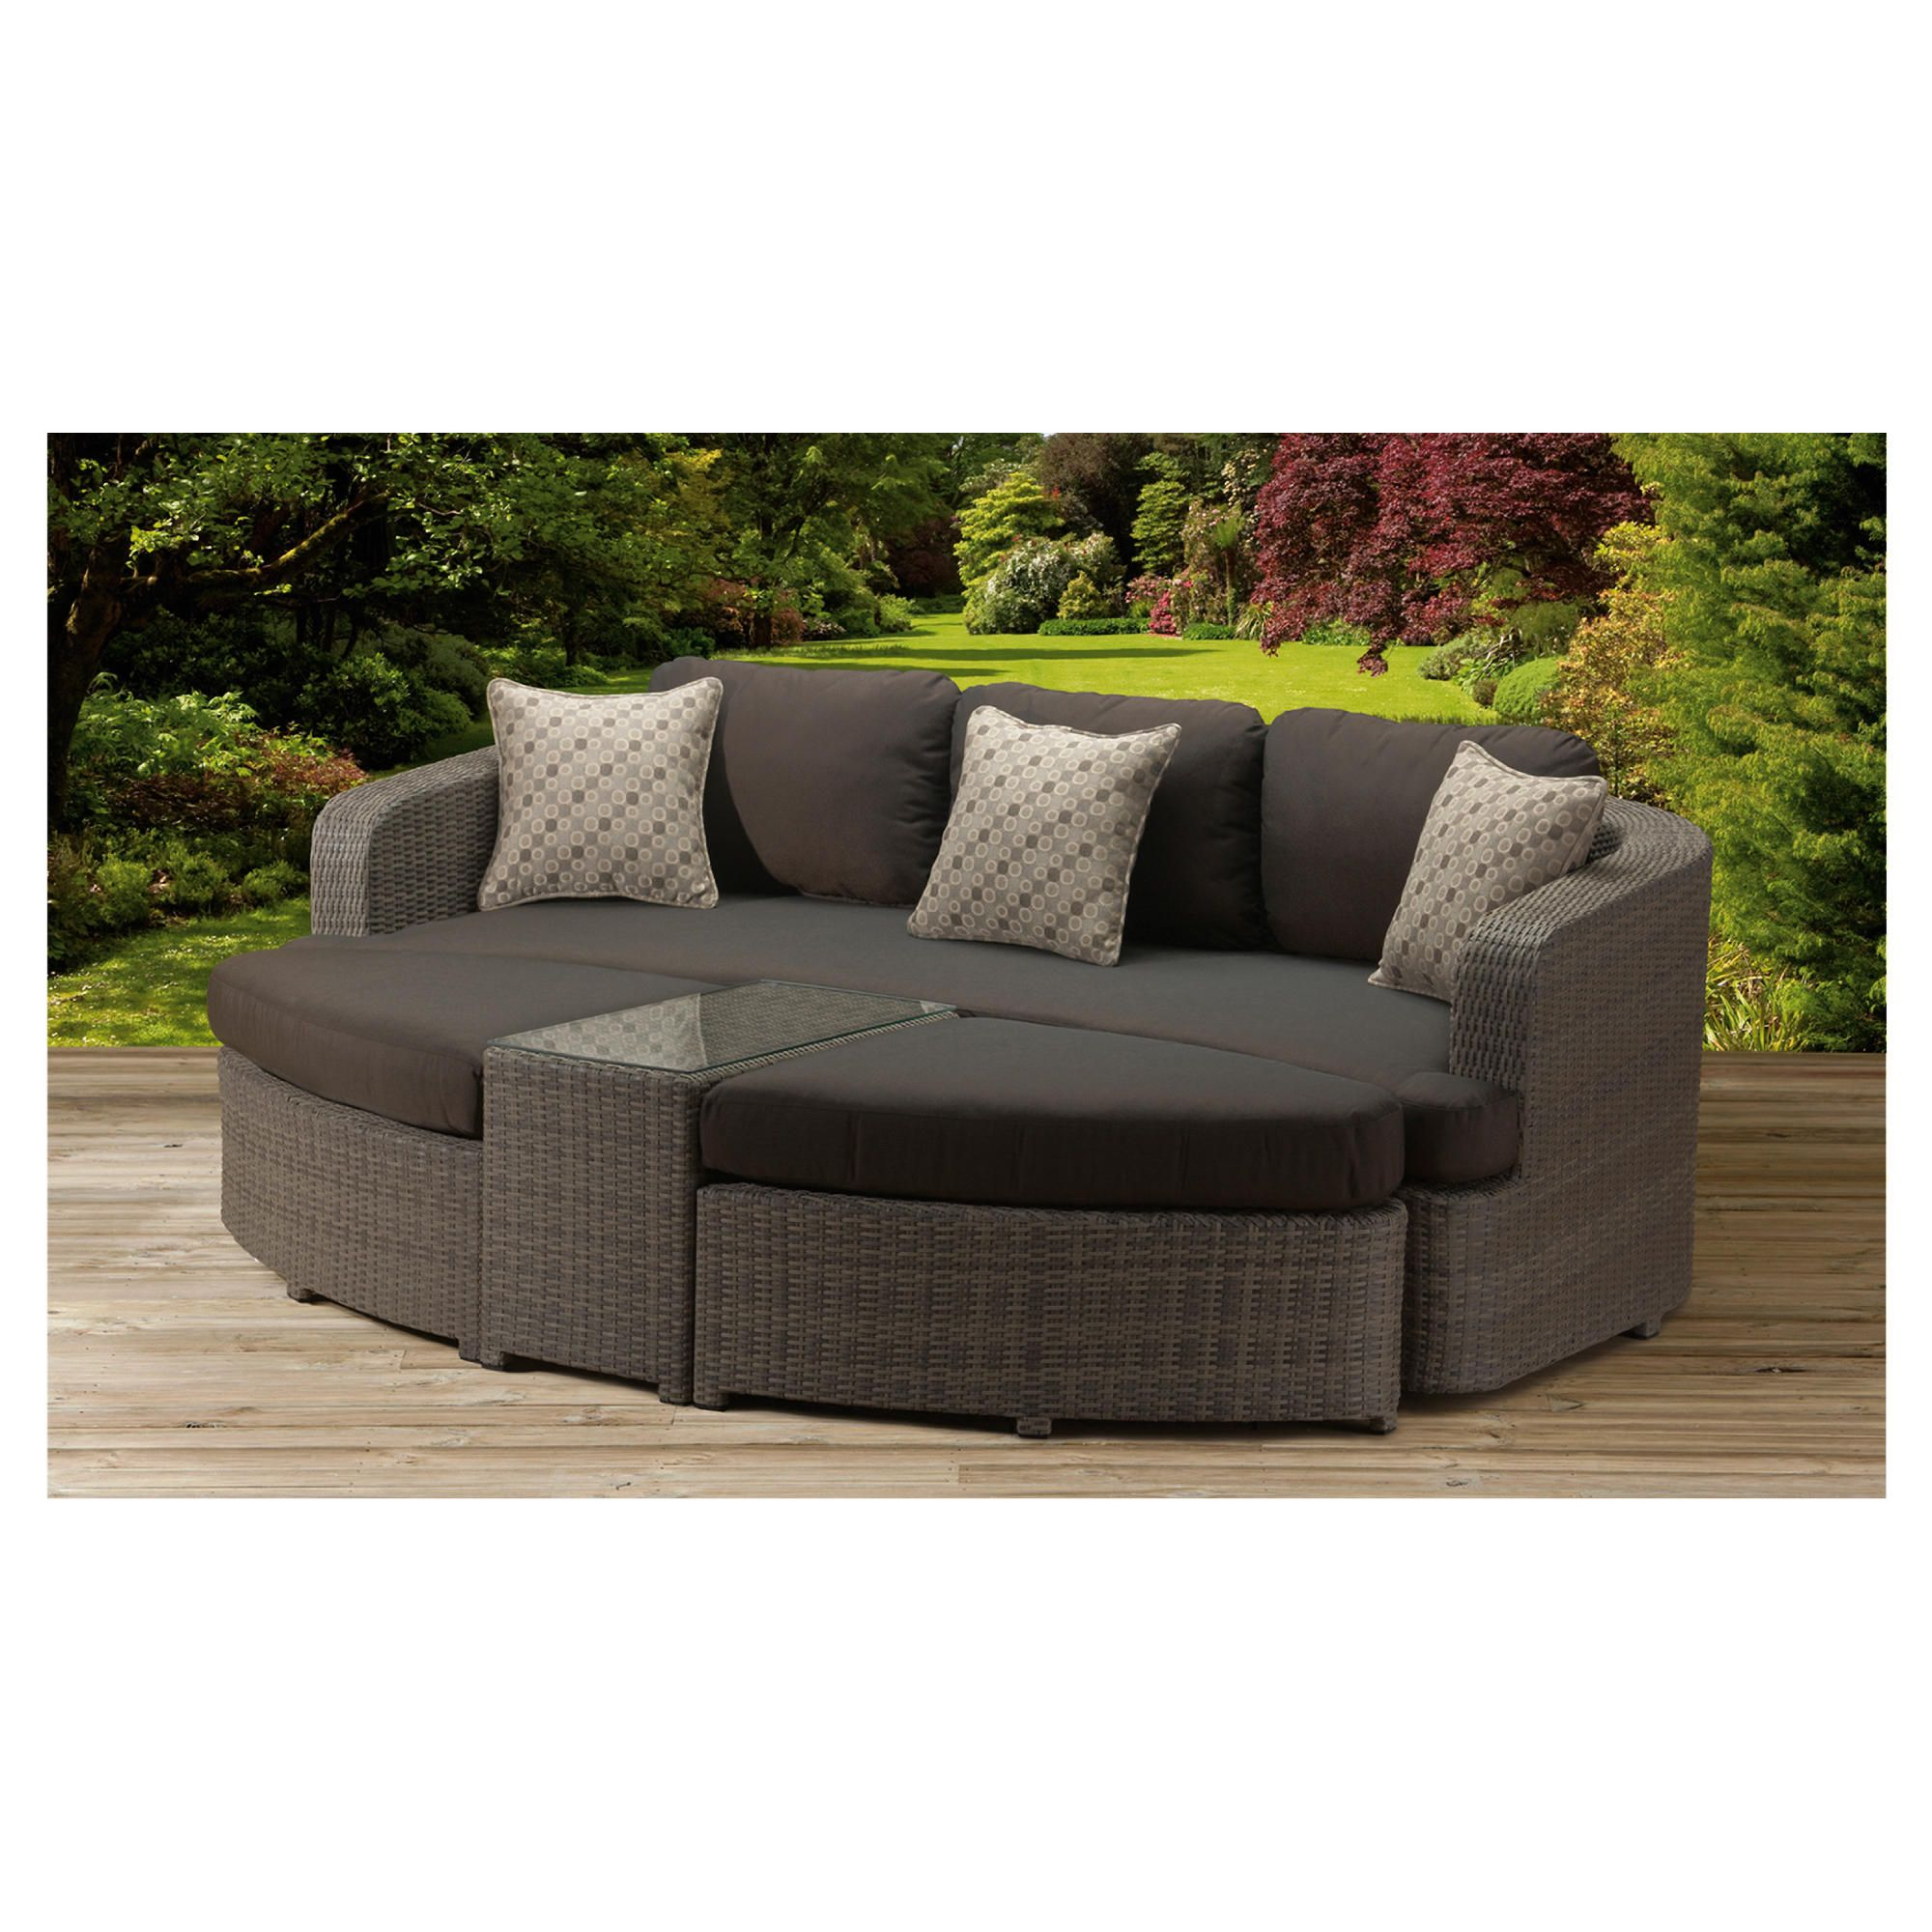 Homes & Gardens 3 Seat Lounger at Tesco Direct